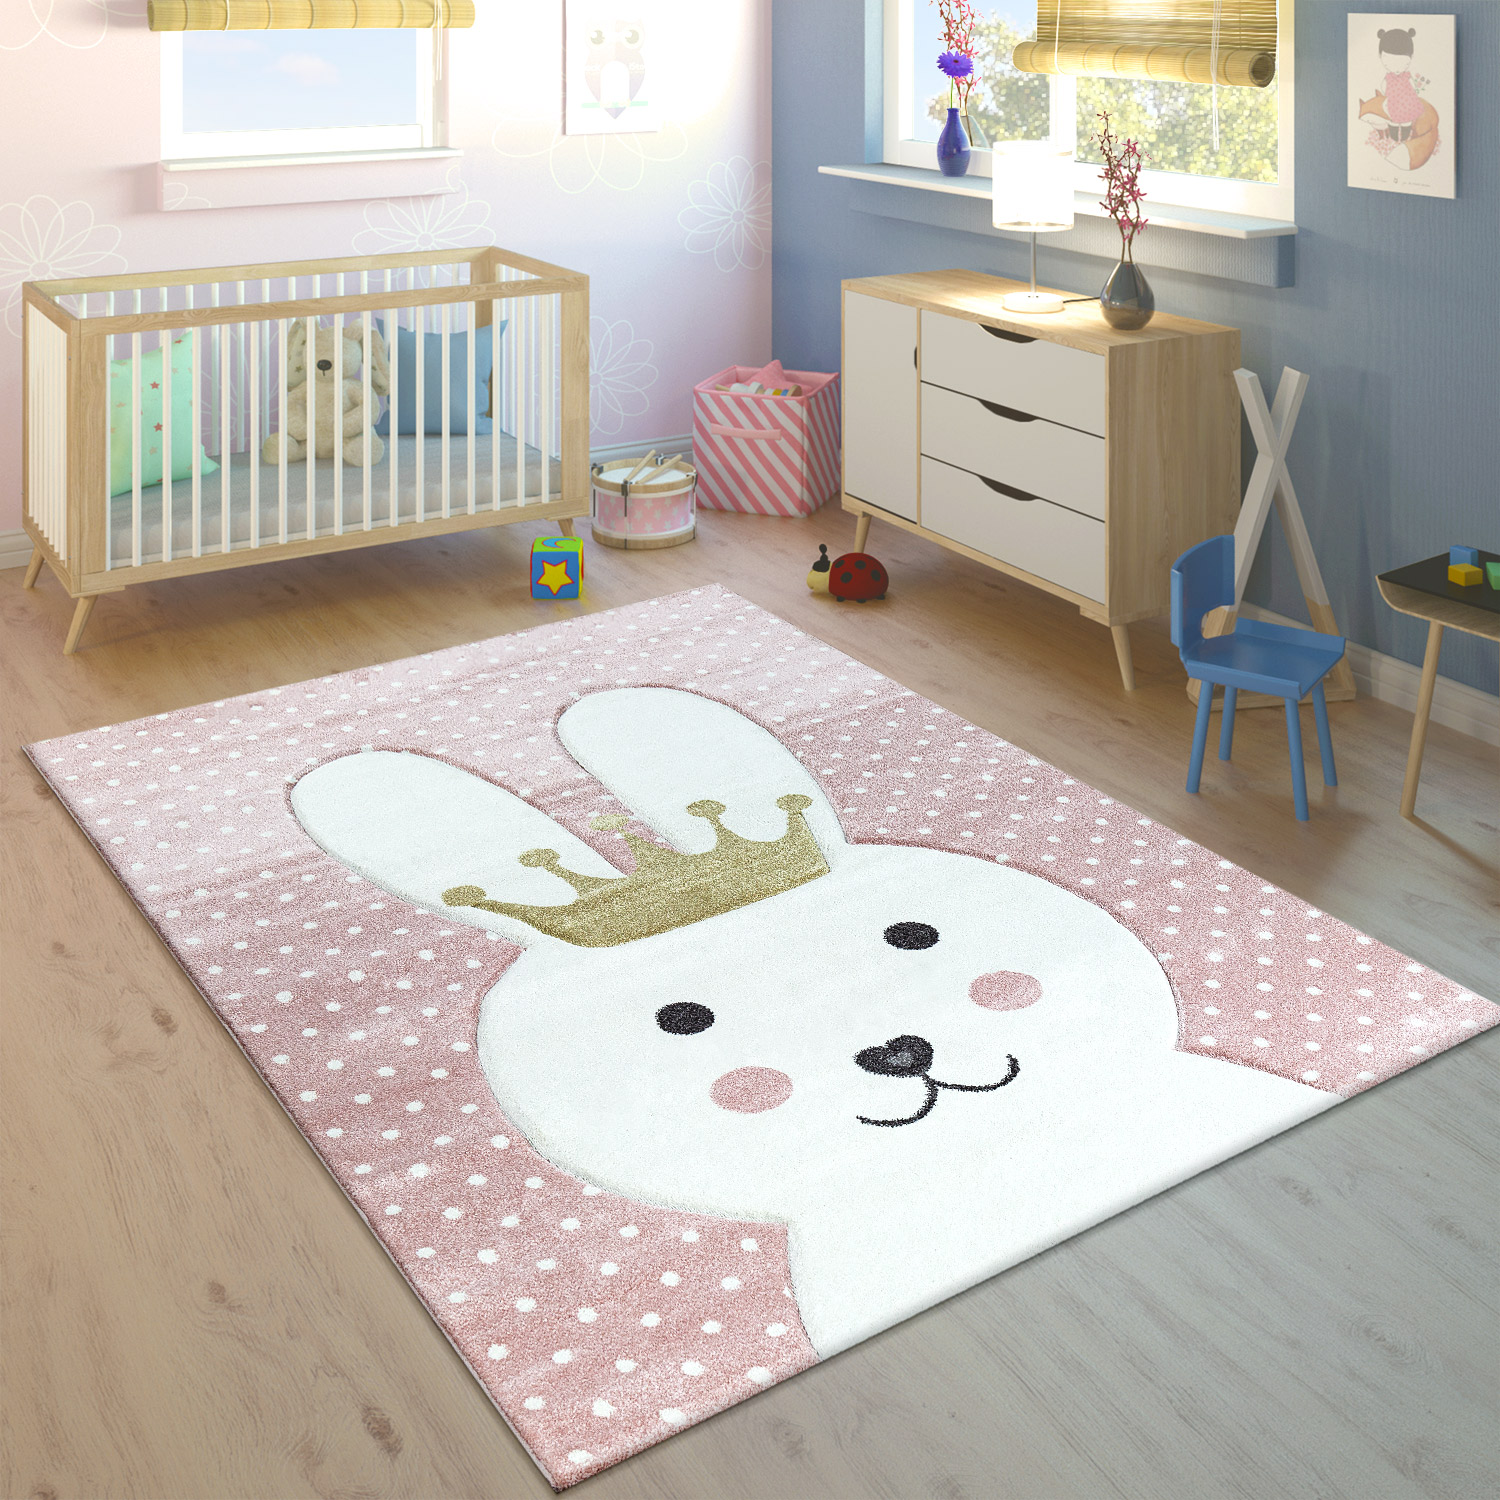 tapis pour enfant lapin avec couronne moderne gris tapis enfants. Black Bedroom Furniture Sets. Home Design Ideas